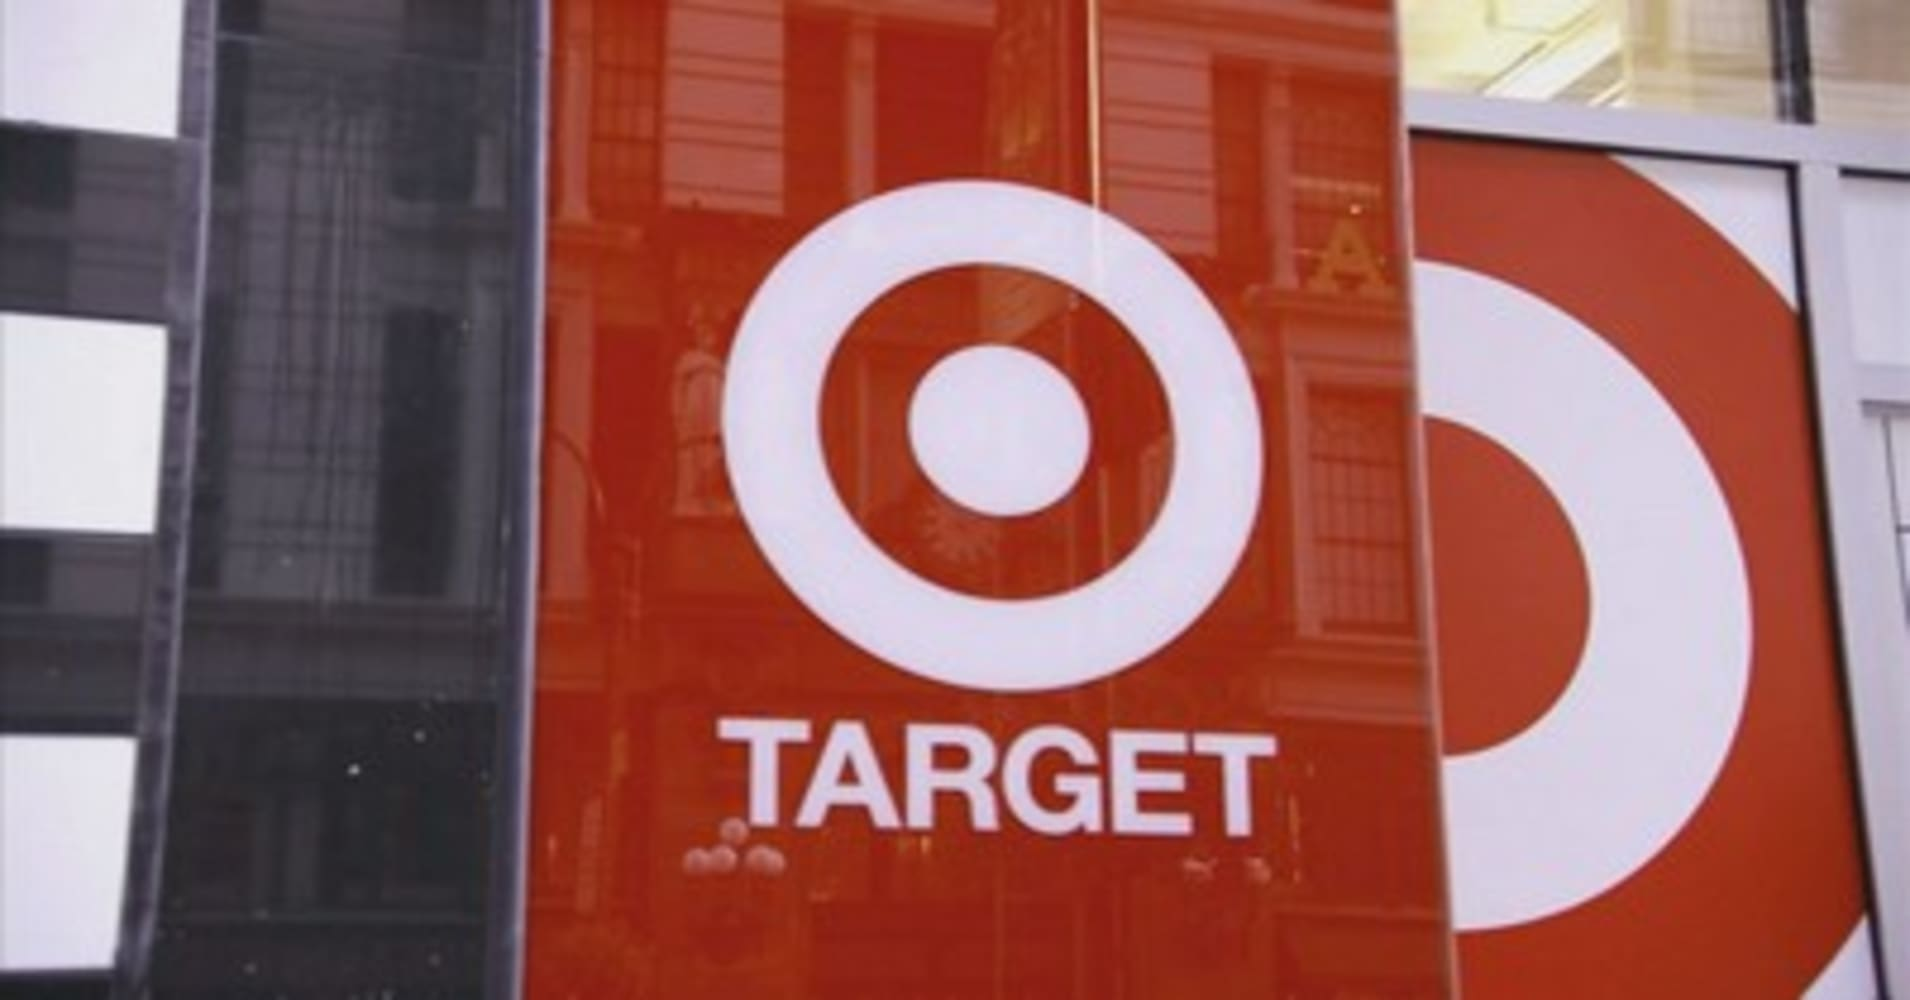 Target to buy grocery delivery service Shipt for $550 million